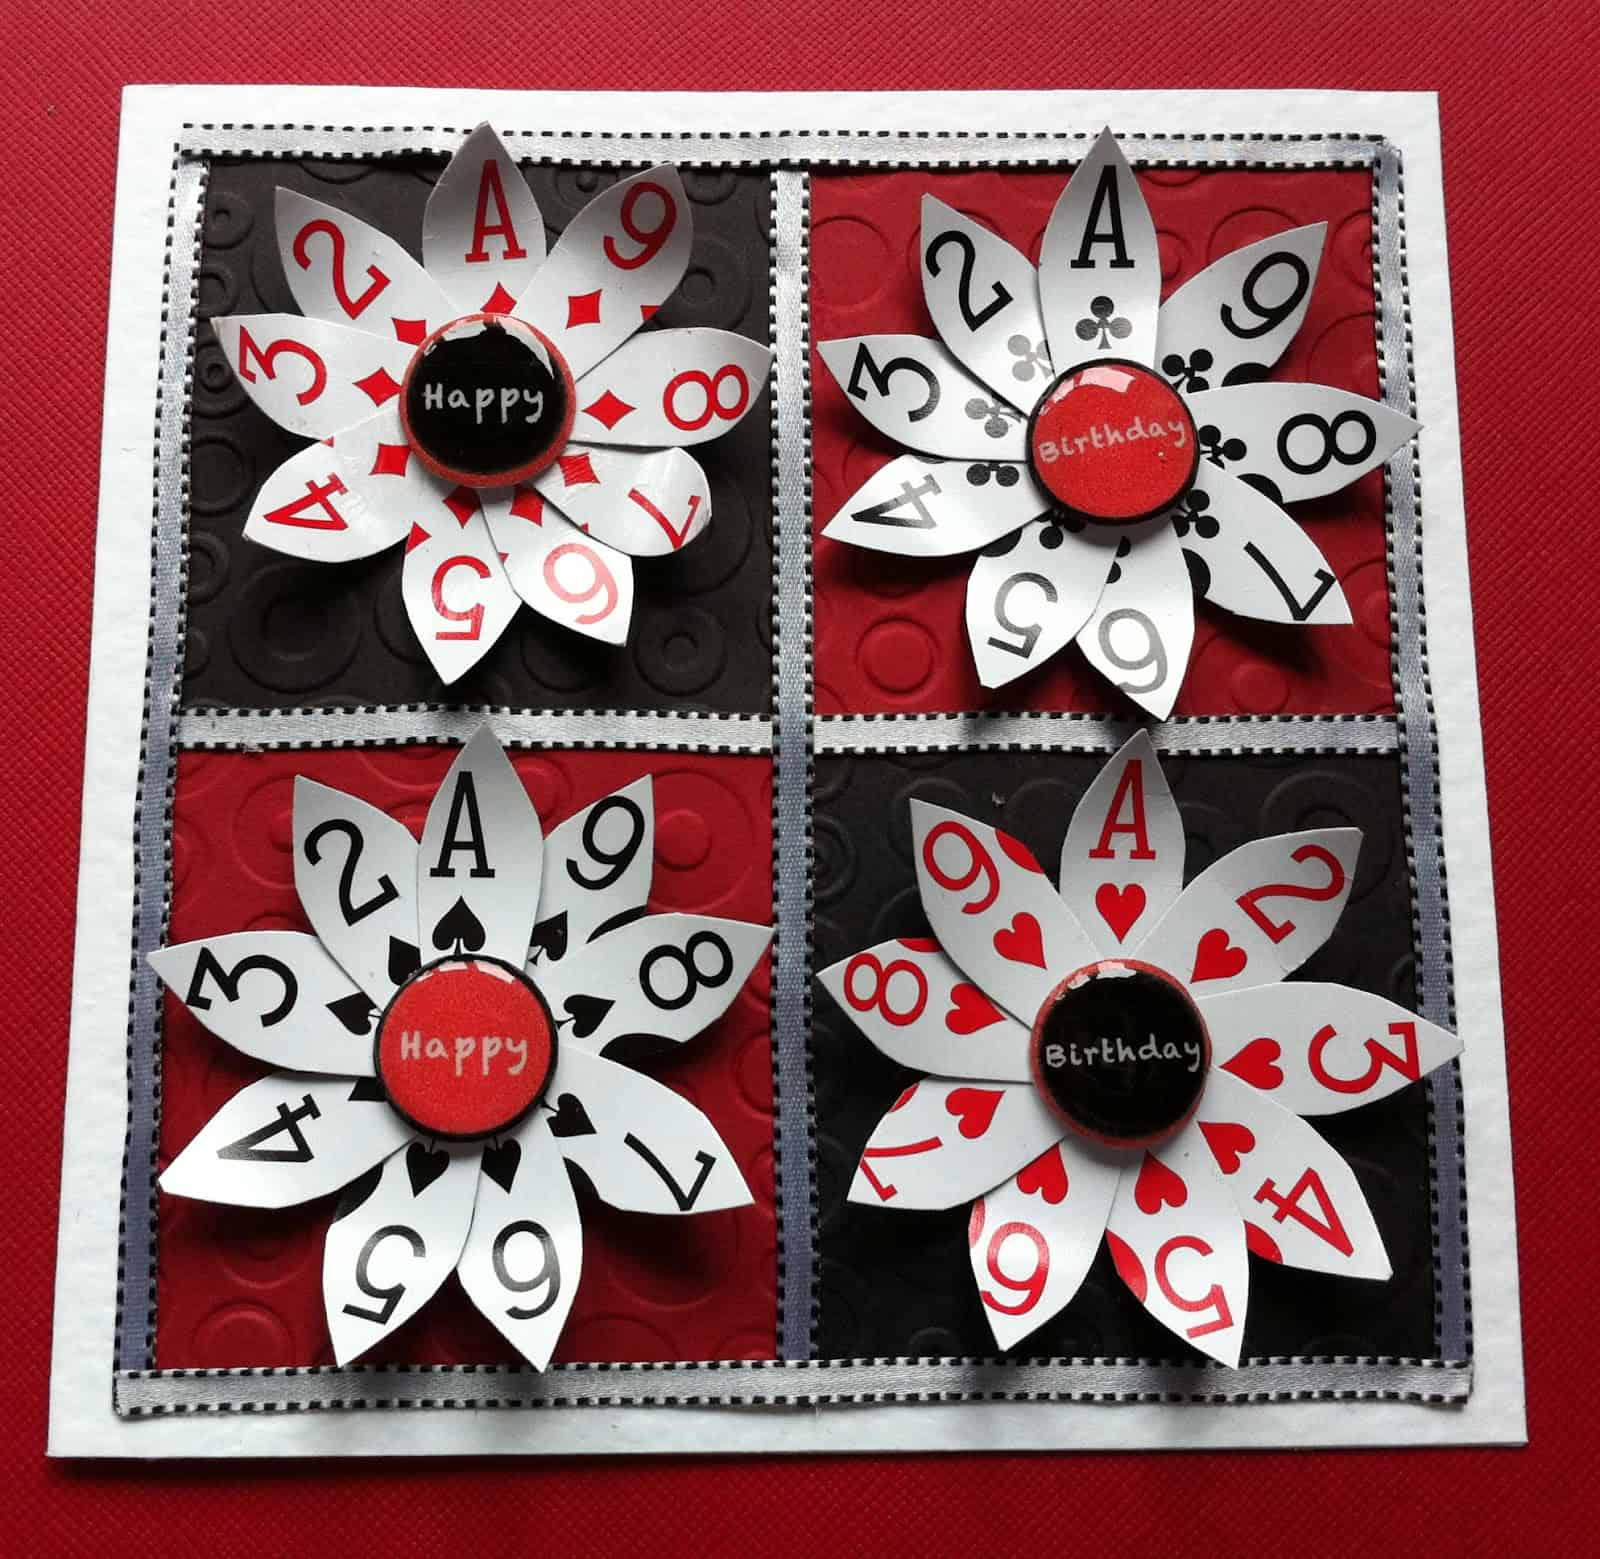 New Tricks Up Your Sleeve Old Playing Card Crafts To Fall In Love With